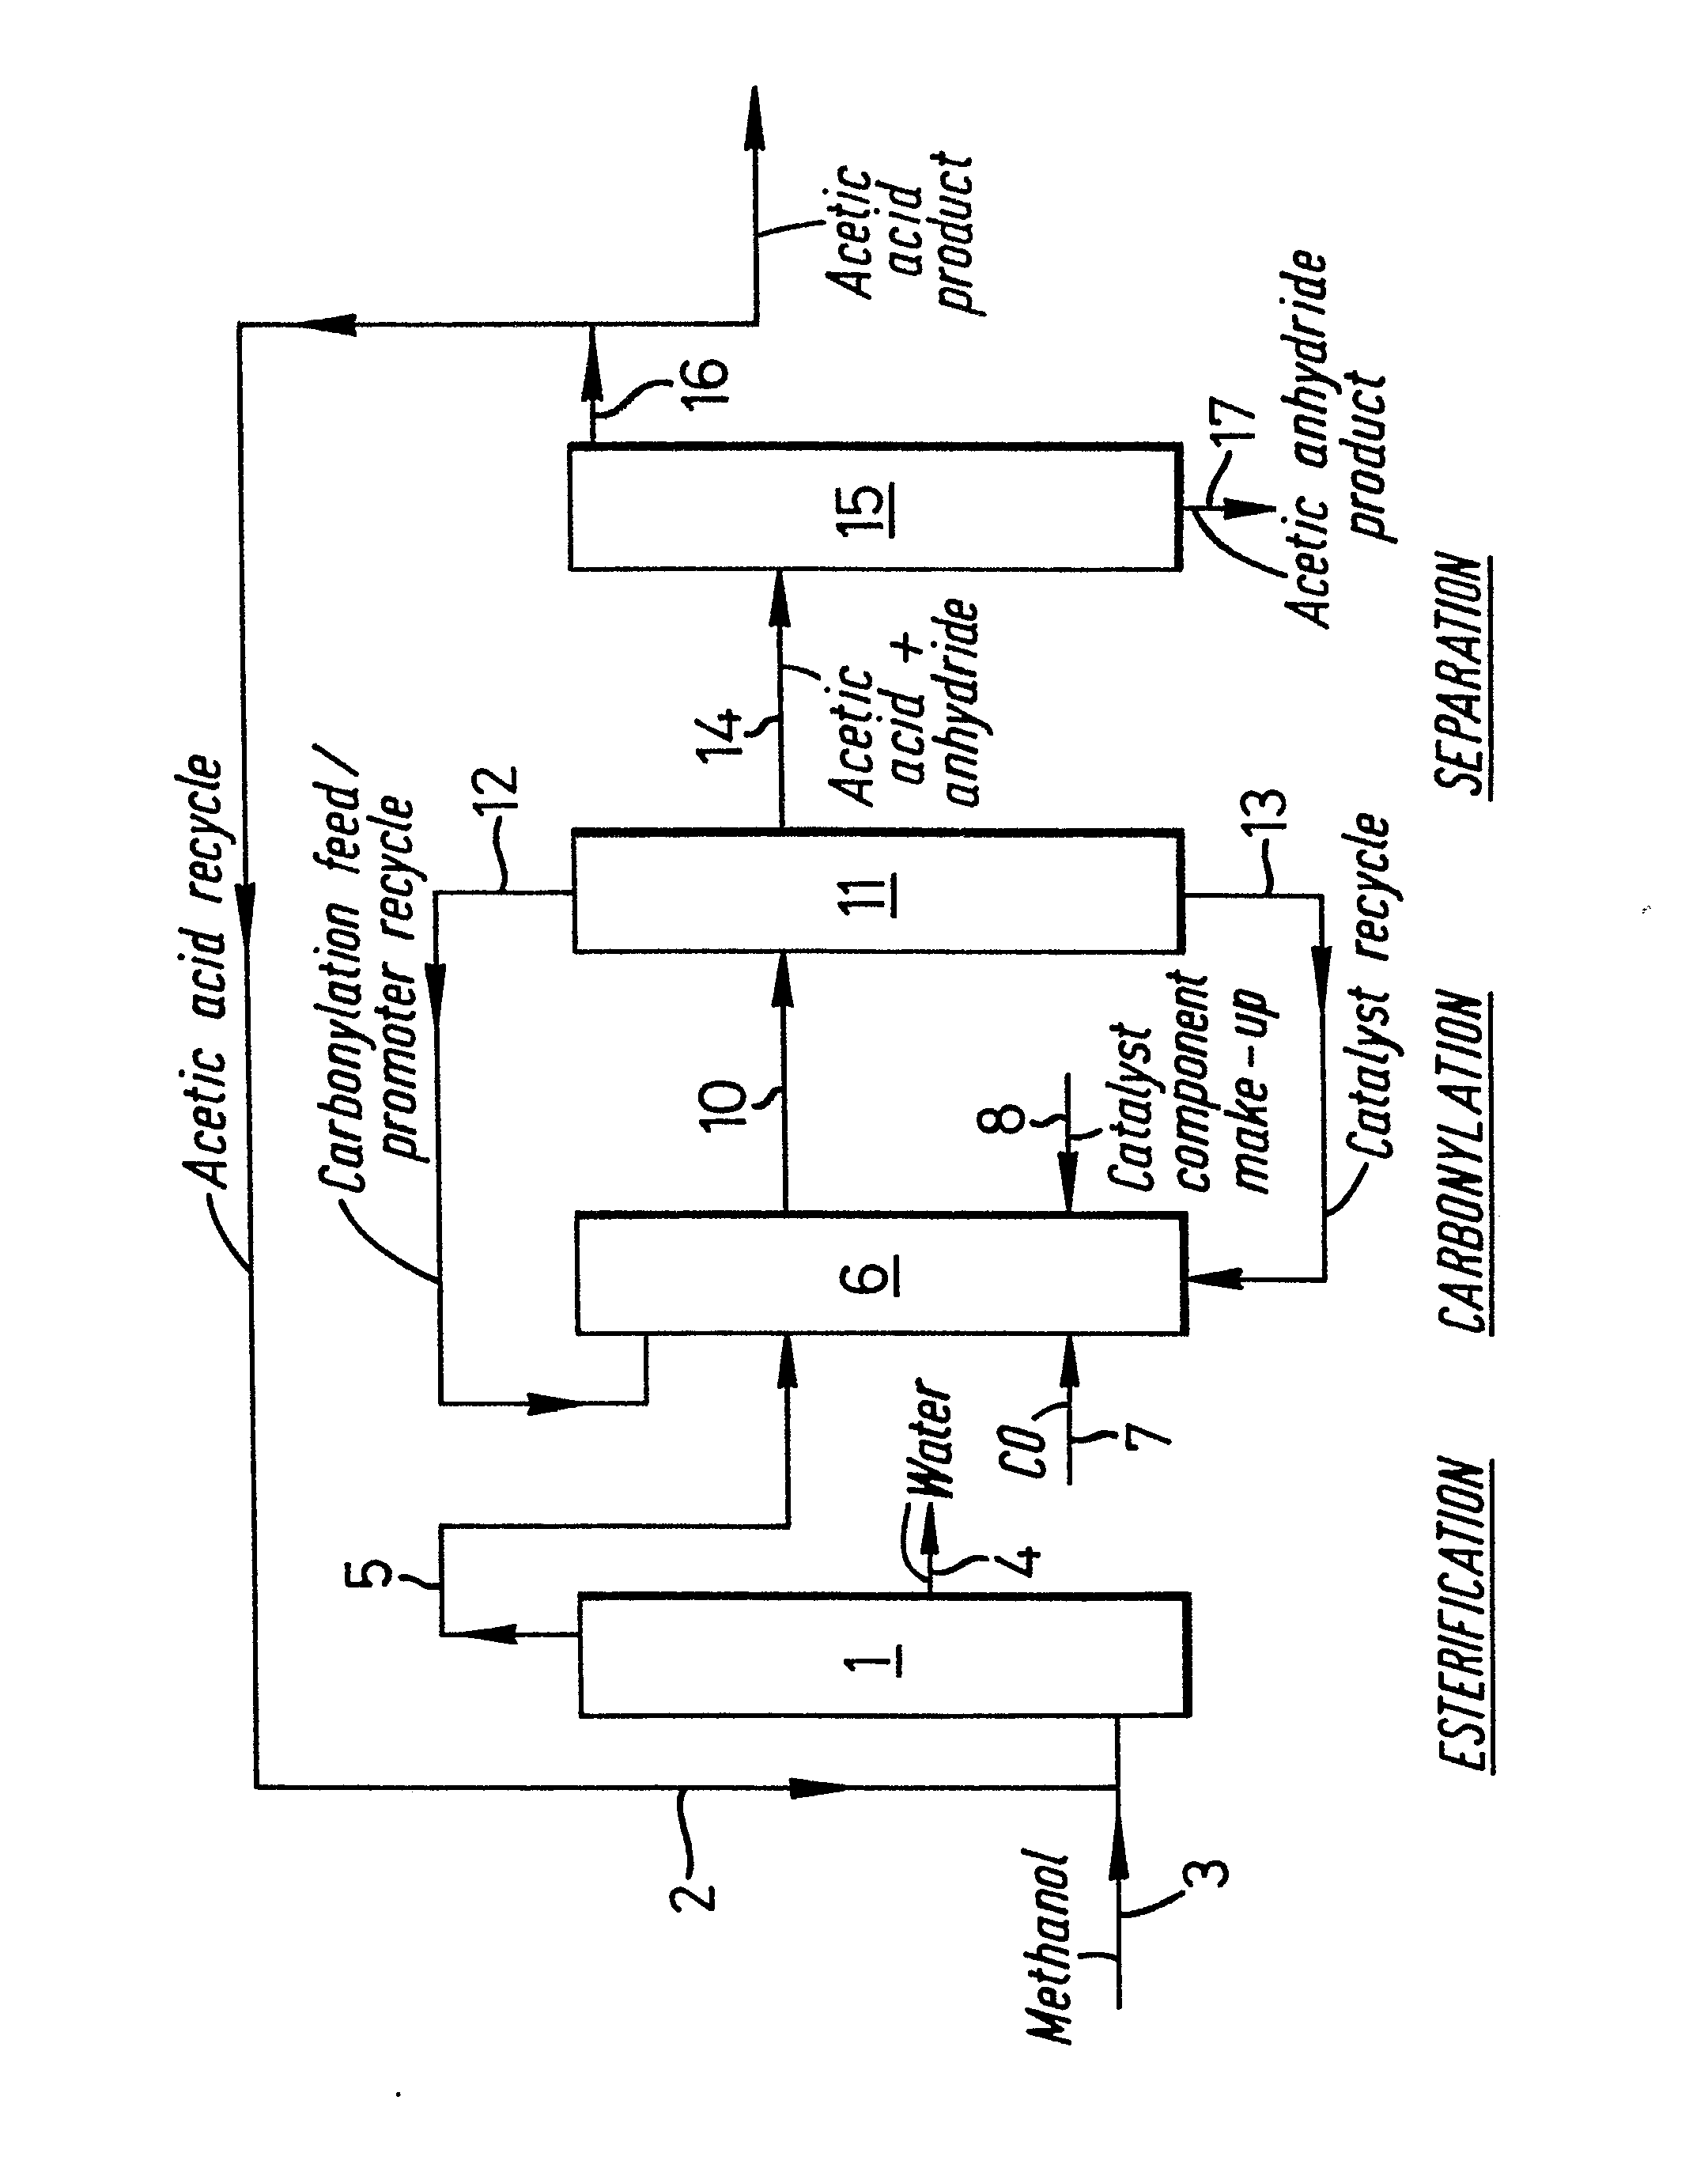 Process for the production of acetic anhydride and acetic